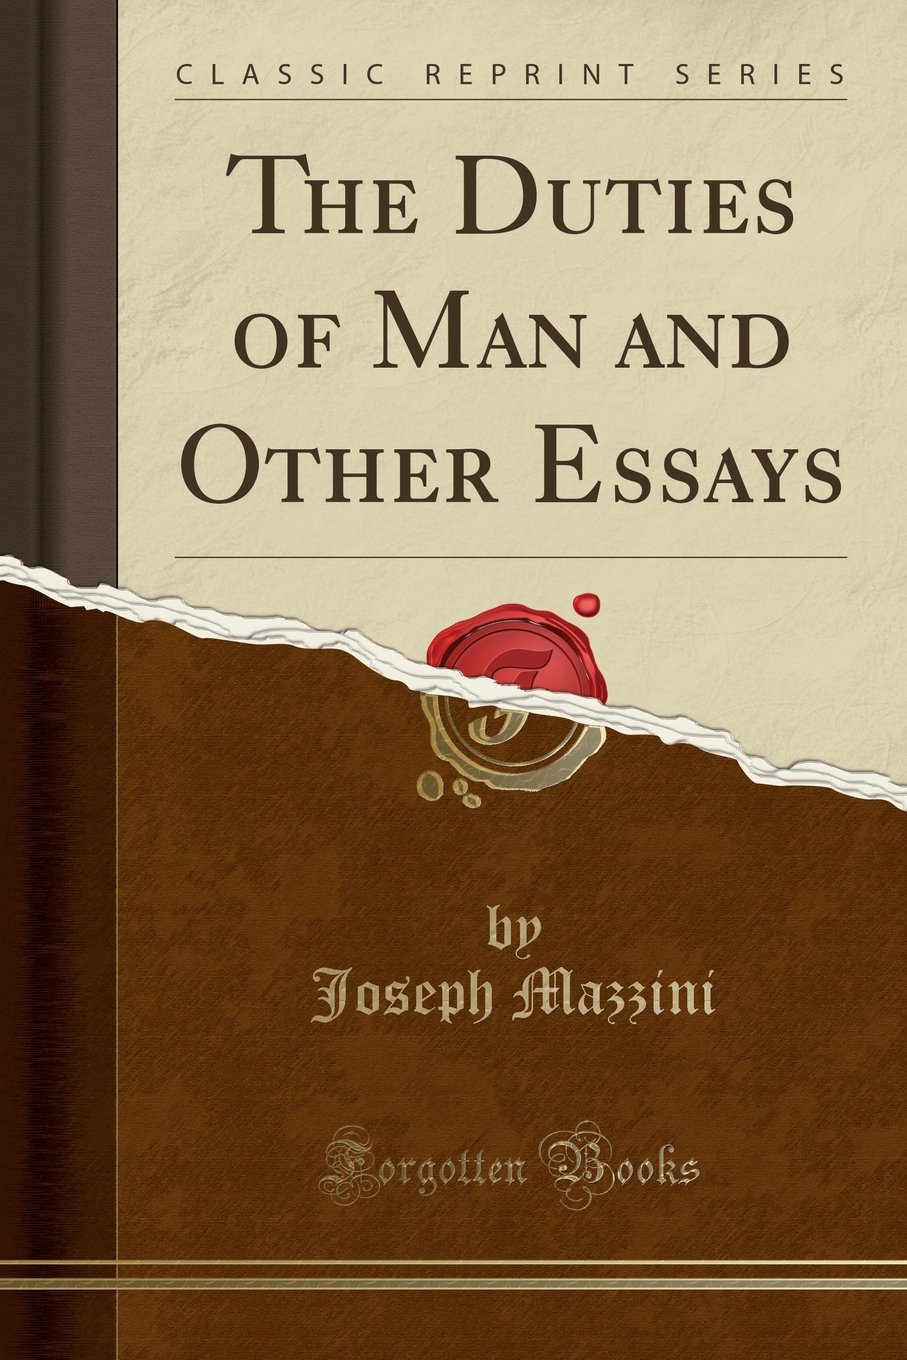 an essay on the duties of man addressed to workingmen meaning